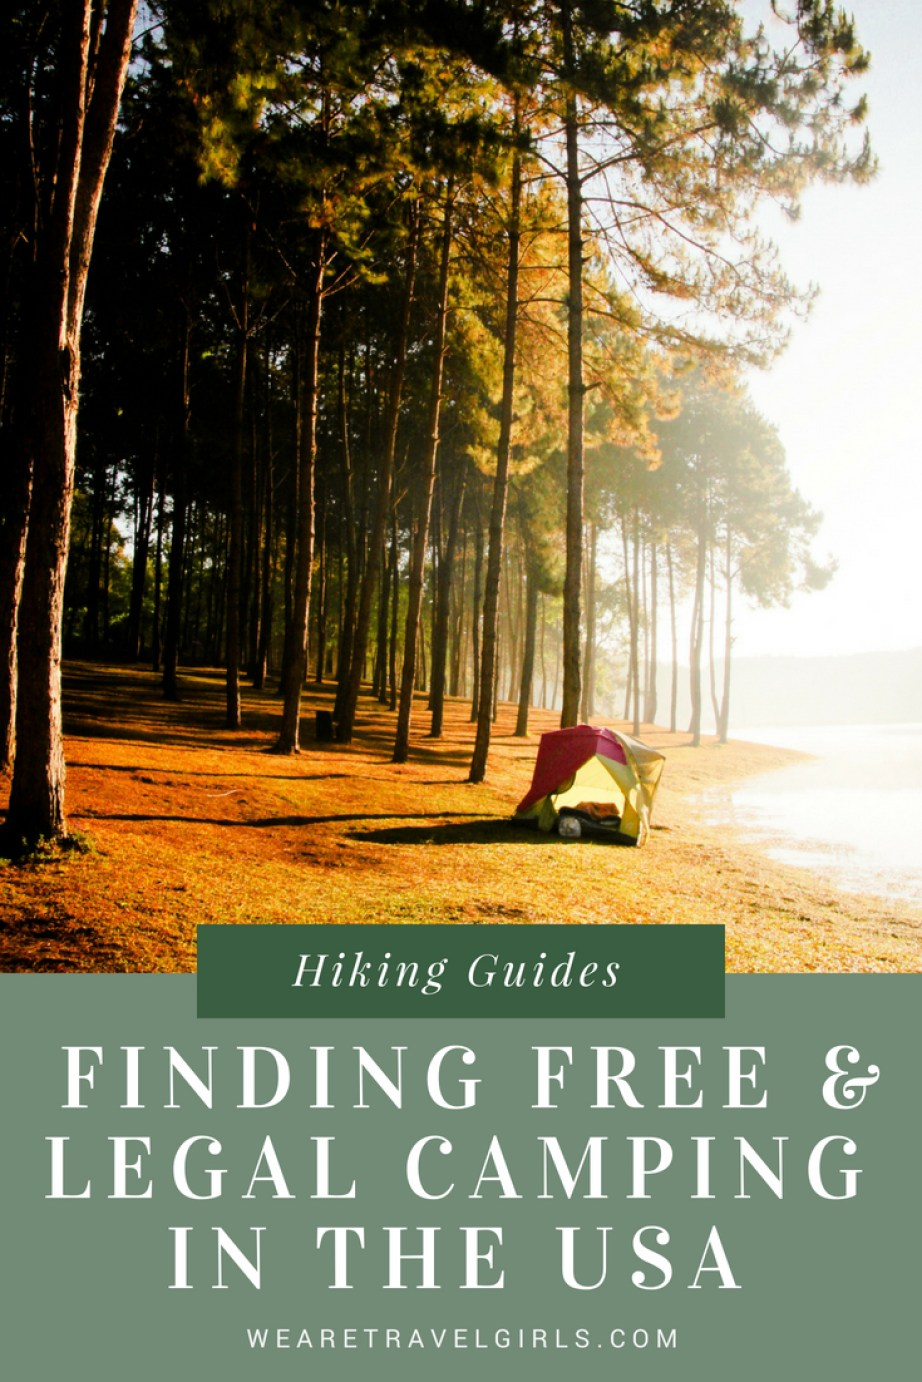 HOW TO FIND FREE AND LEGAL CAMPING IN THE USA